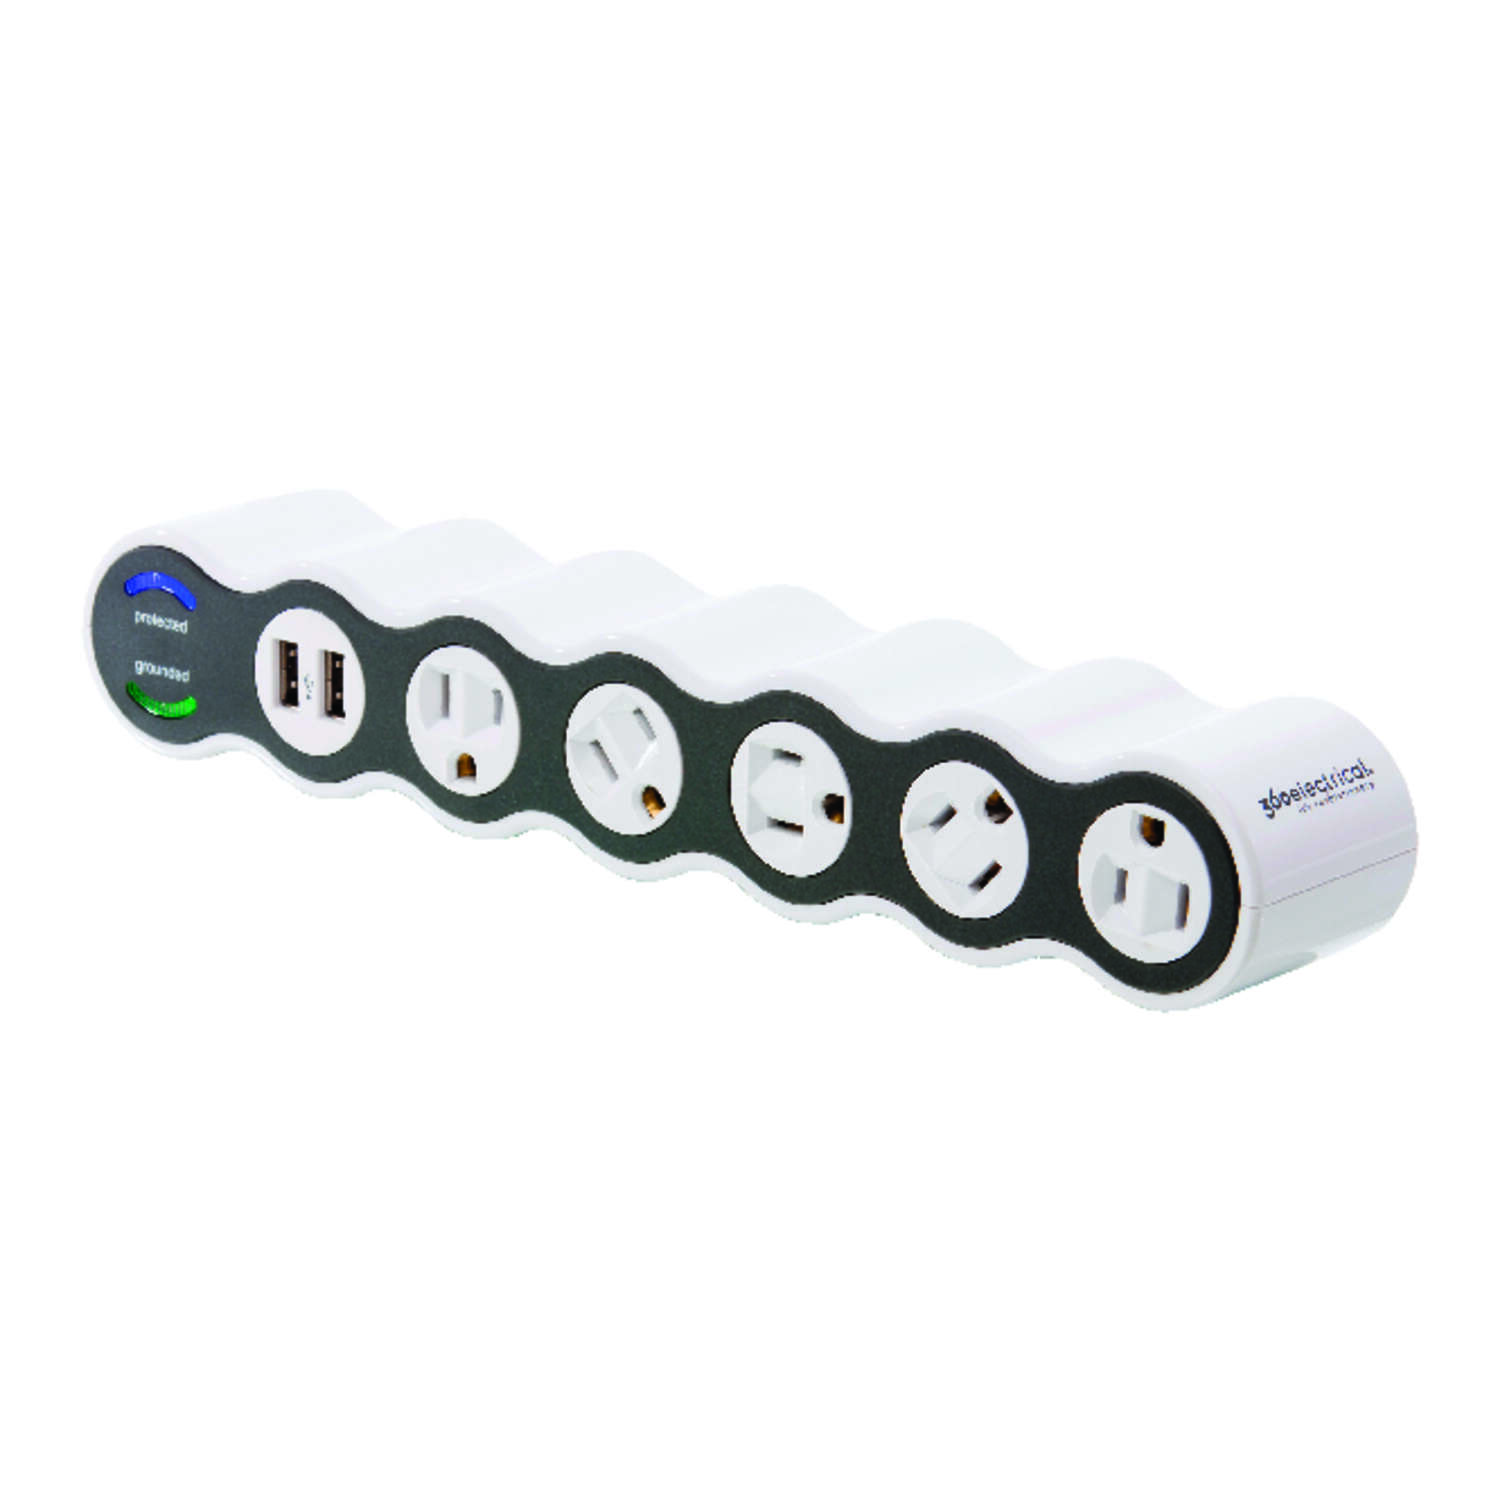 360 Electrical  2160 J 4 ft. L 5 outlets Surge Protector